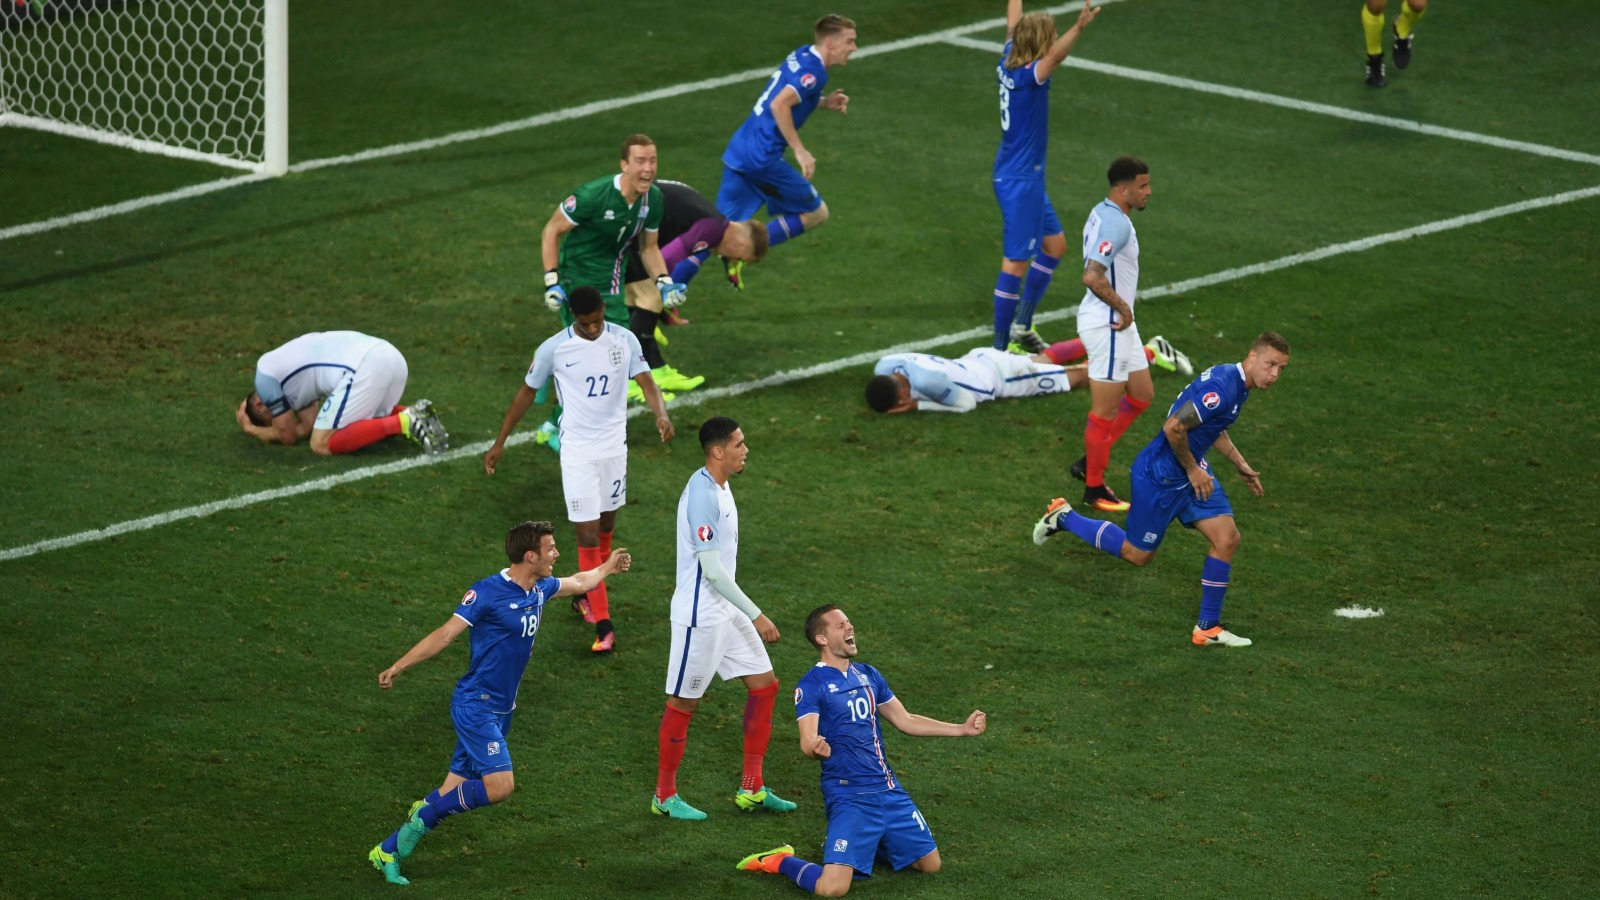 How big of an upset was Iceland's win over England?